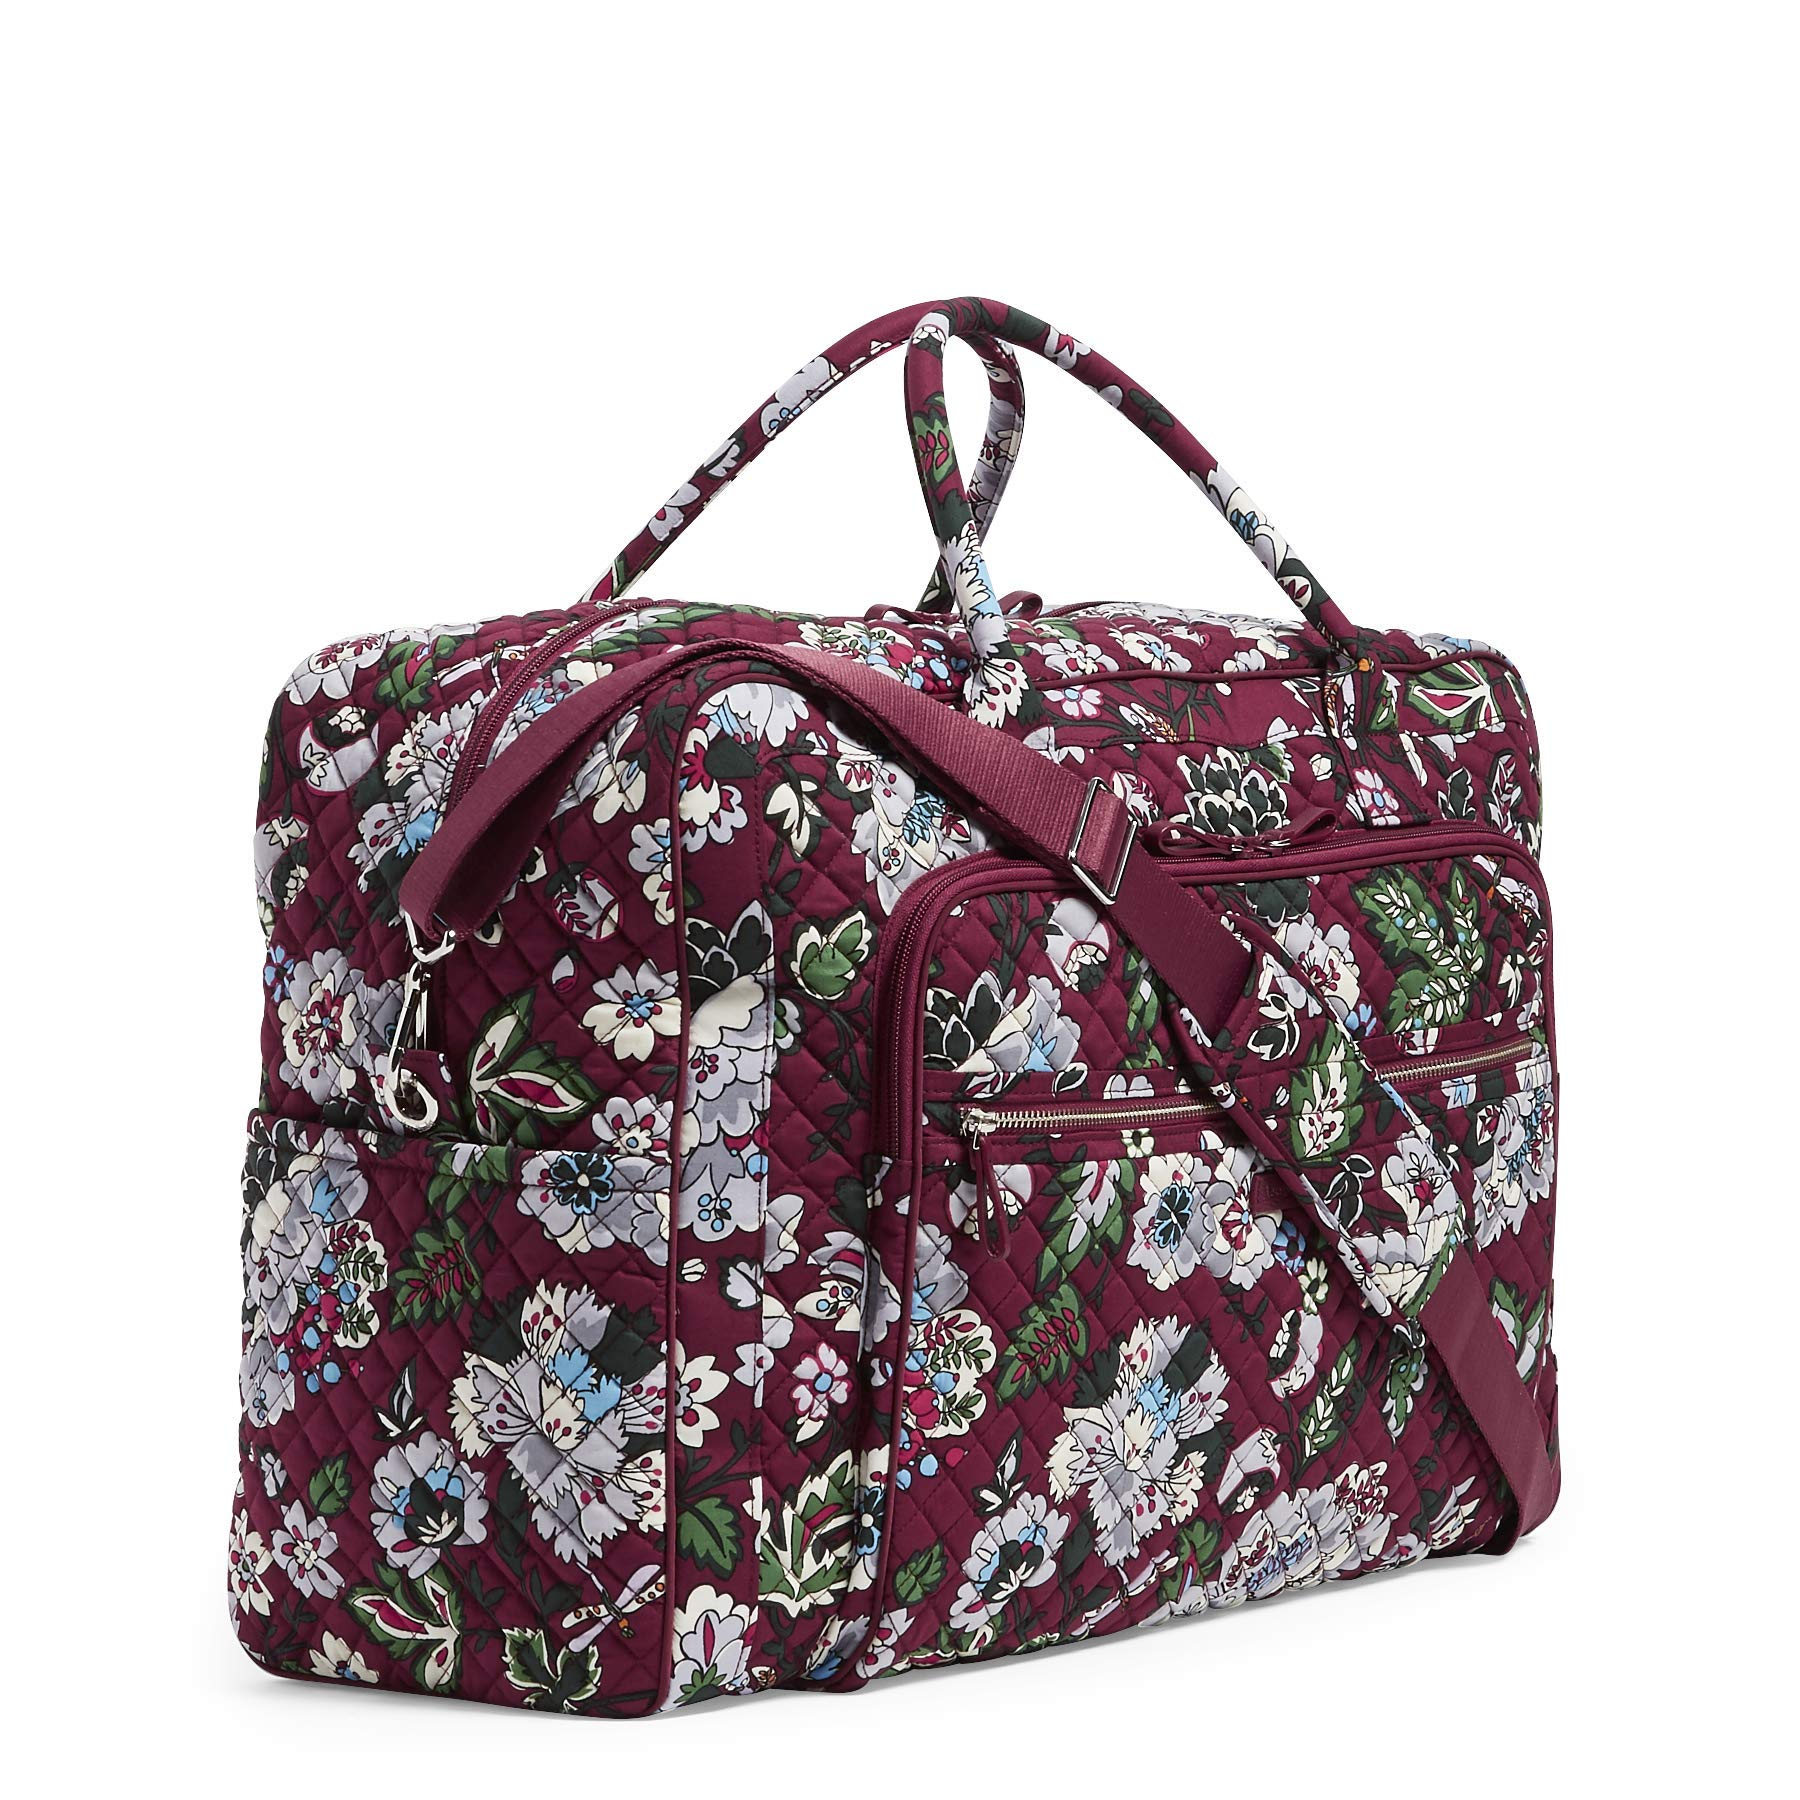 Vera Bradley Iconic Grand Weekender Travel Bag, Signature Cotton, bordeaux blooms by Vera Bradley (Image #5)